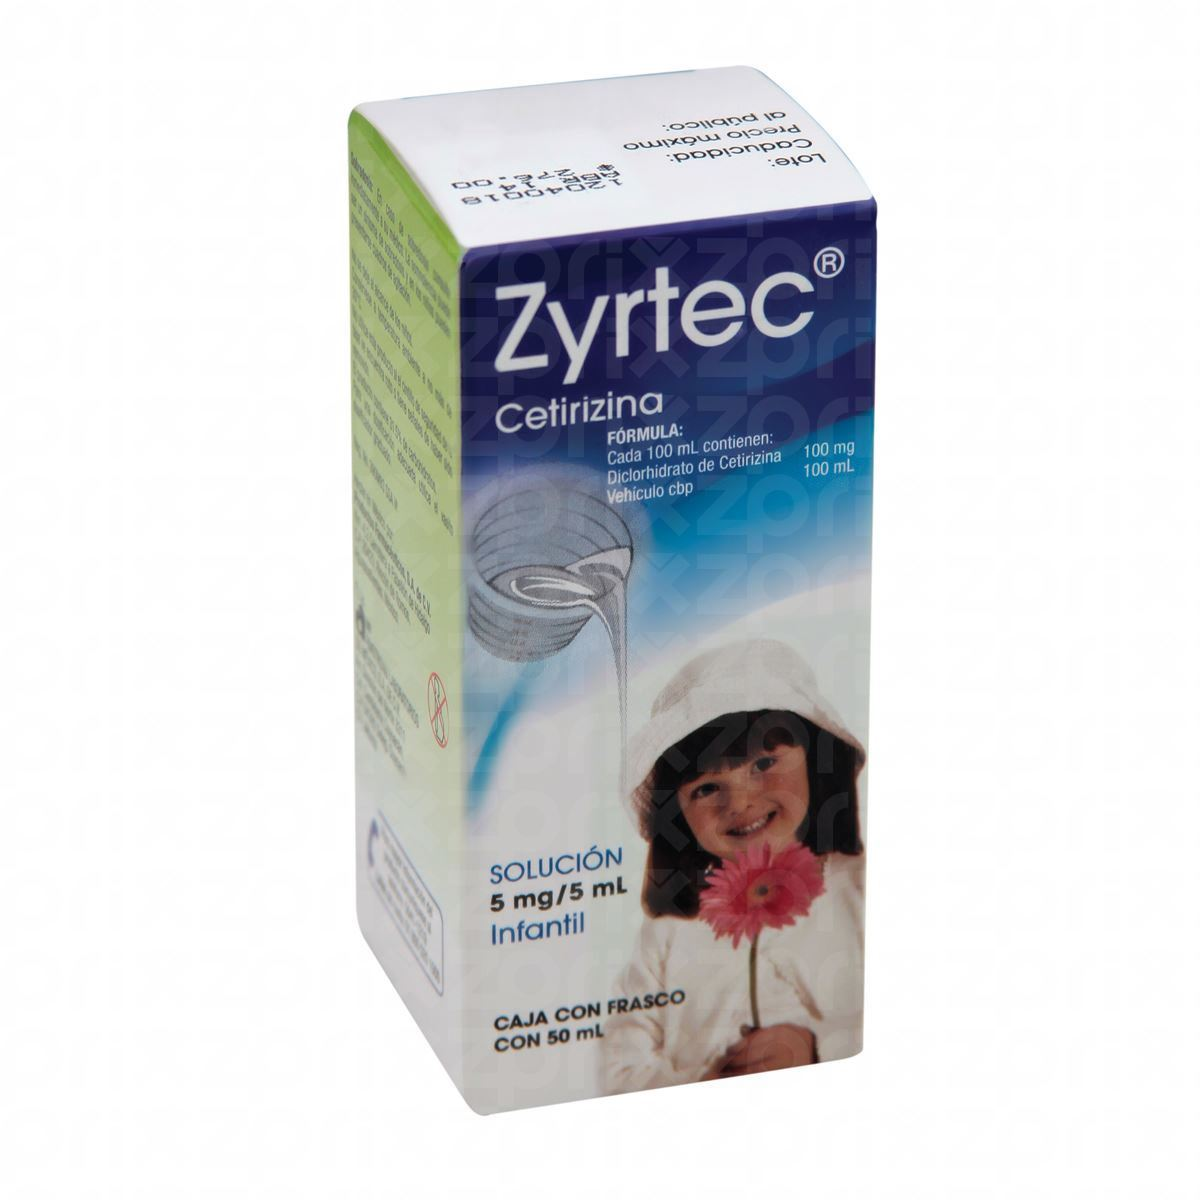 Zyrtec 100 Mg./100 Ml. Oral Inf 50 Ml. Suspension